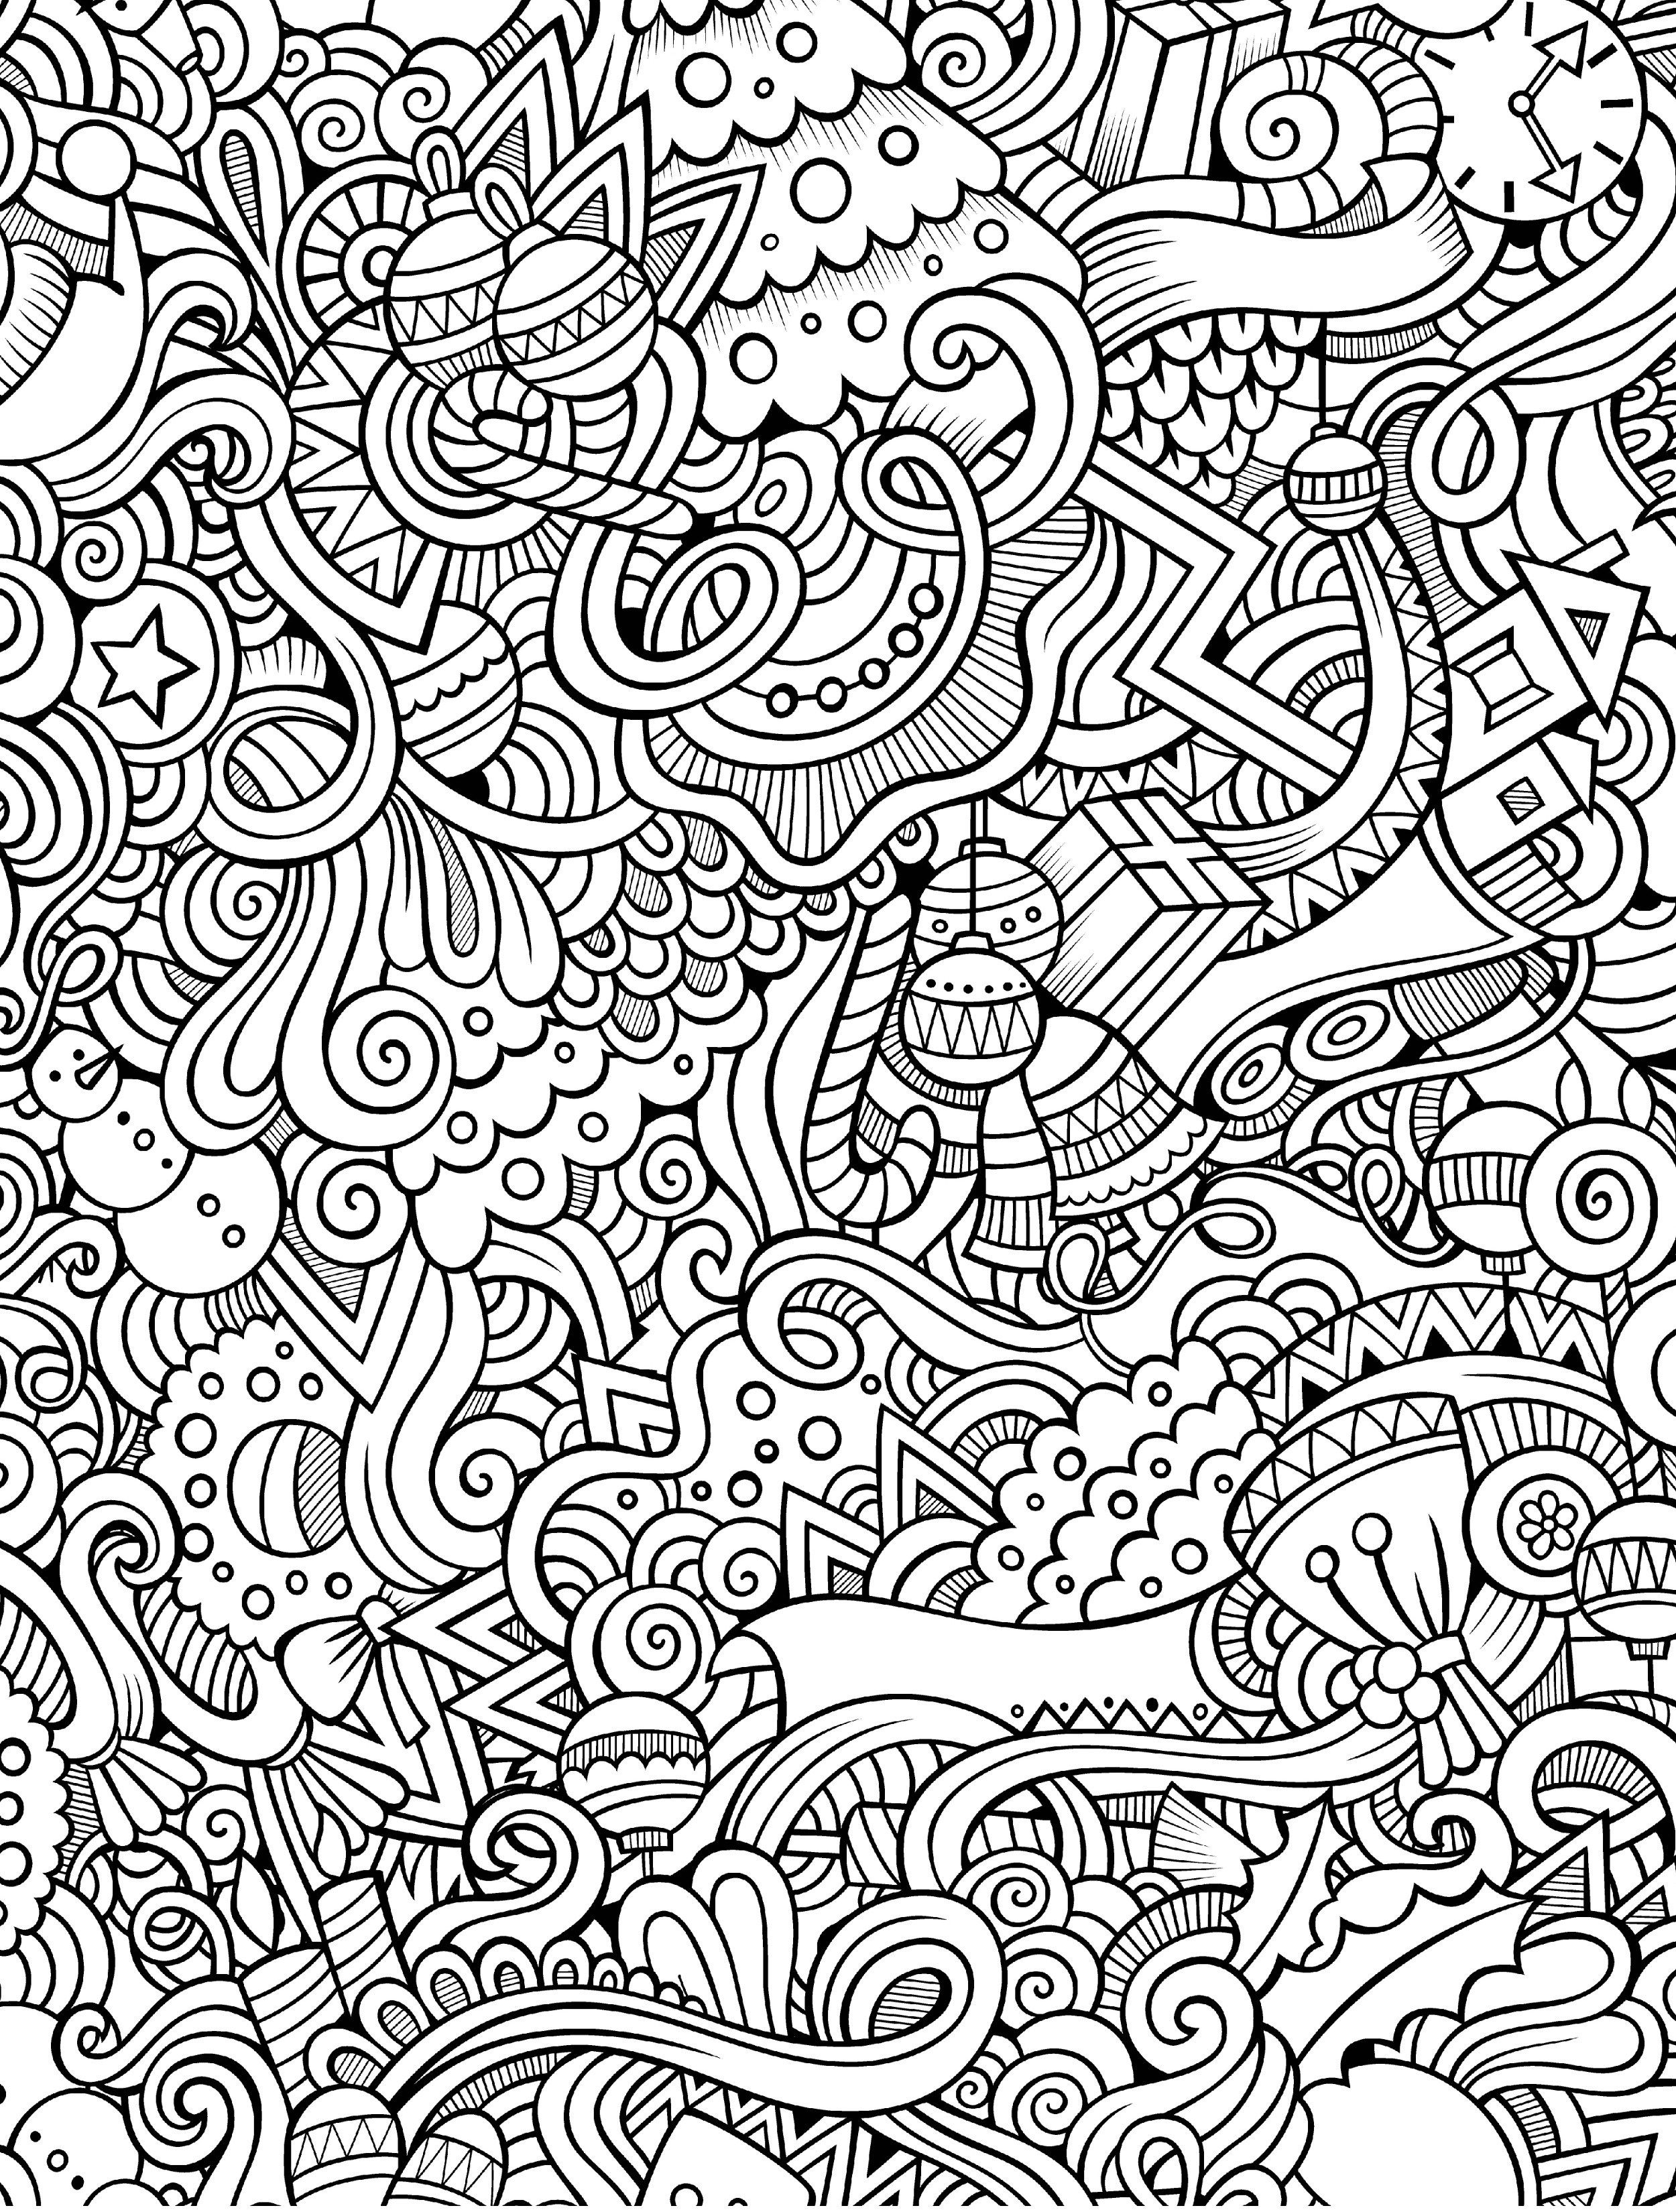 adult coloring pages free printable 10 Free Printable Holiday Adult Coloring Pages | Coloring pages  adult coloring pages free printable